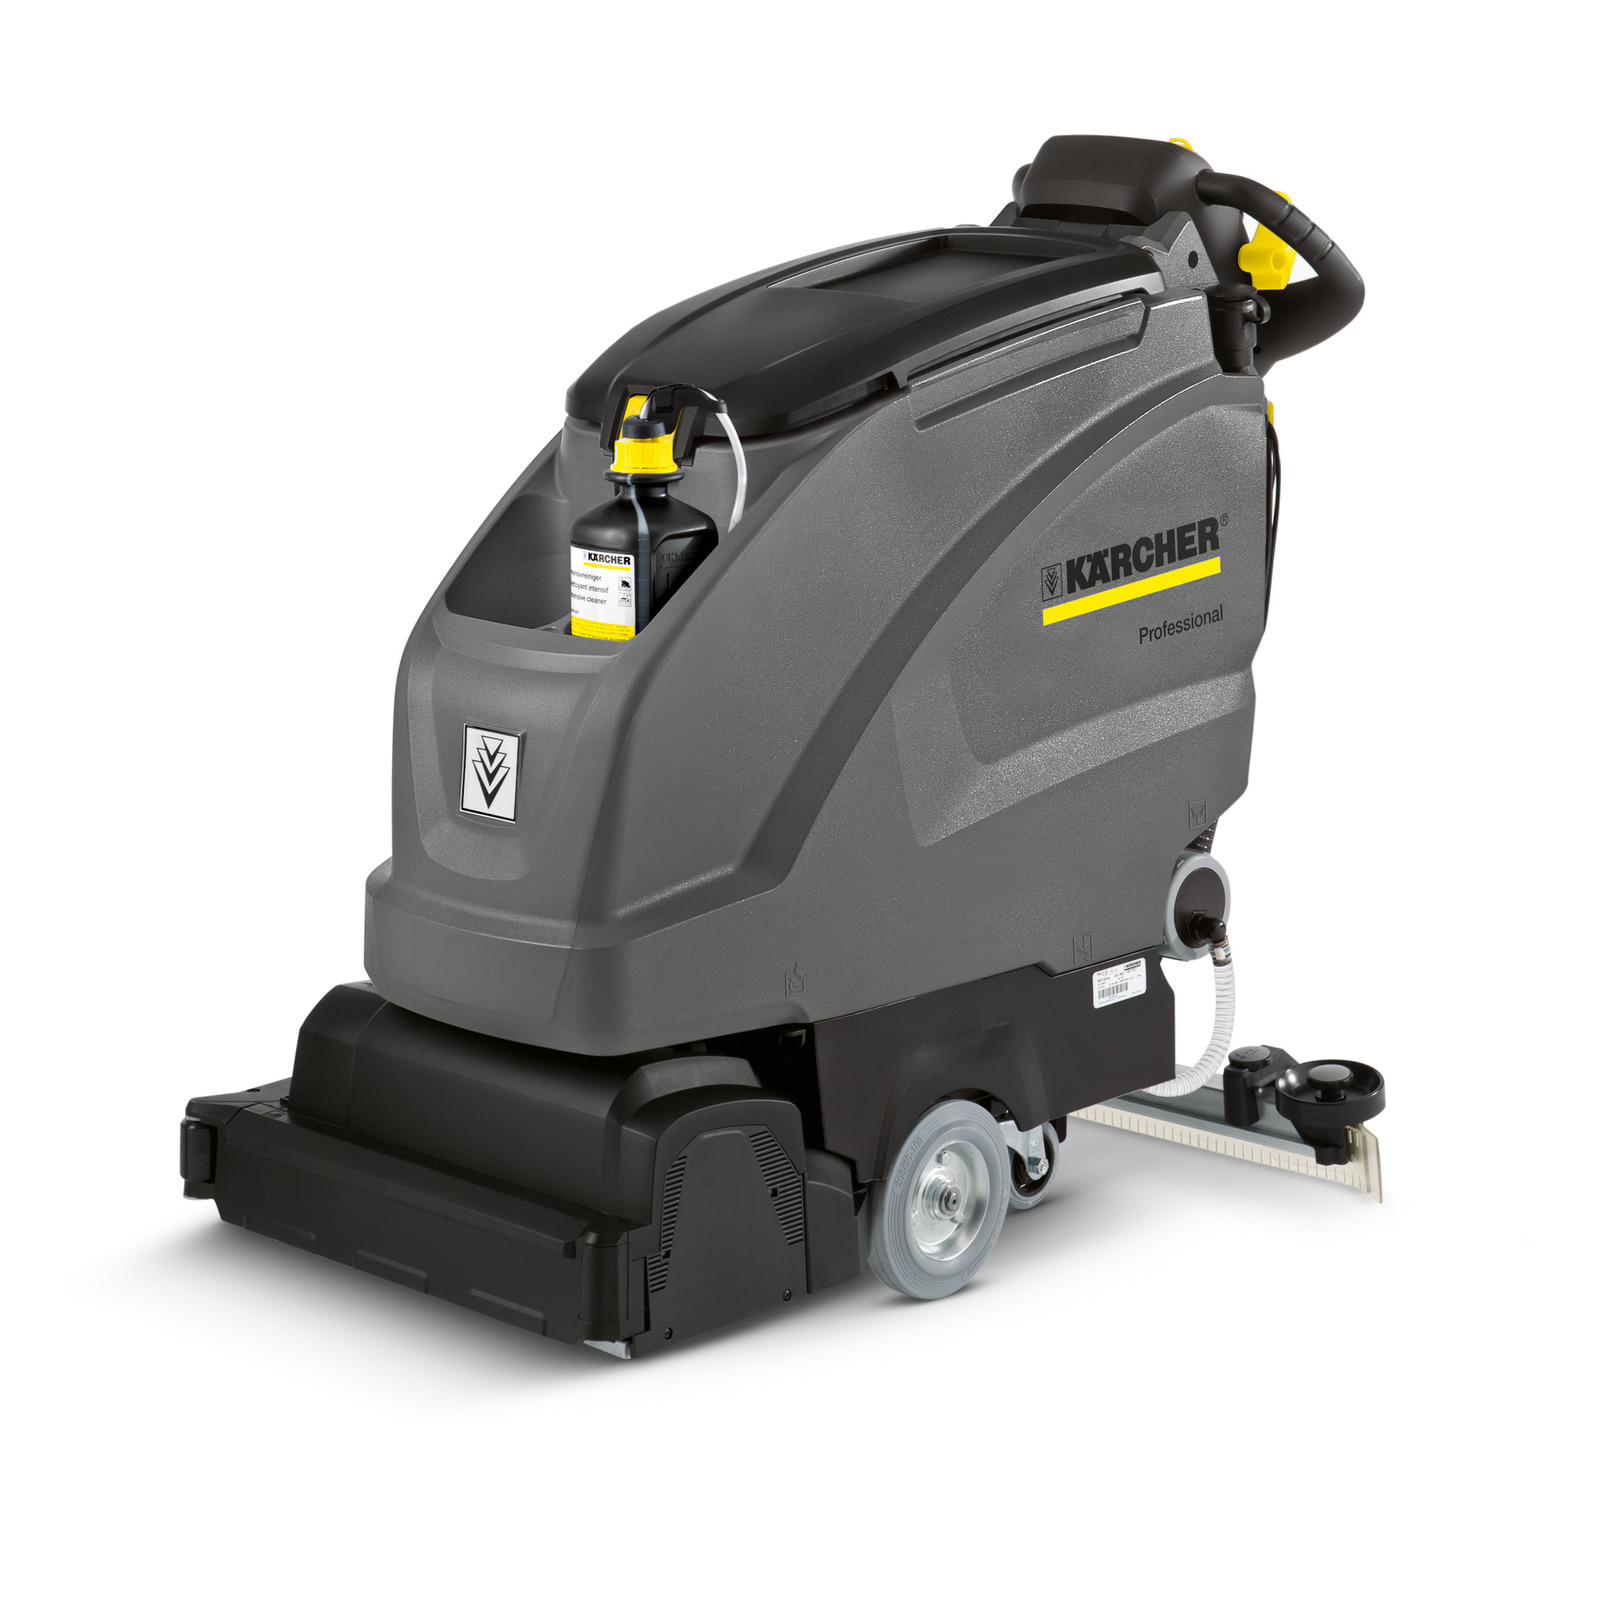 Karcher B 40 C Bp Traction Drive Auto Scrubber 24v 138 Ah AGM Batteries R55 Cylindrical Scrub Deck 9.841-374.1 Freight Included